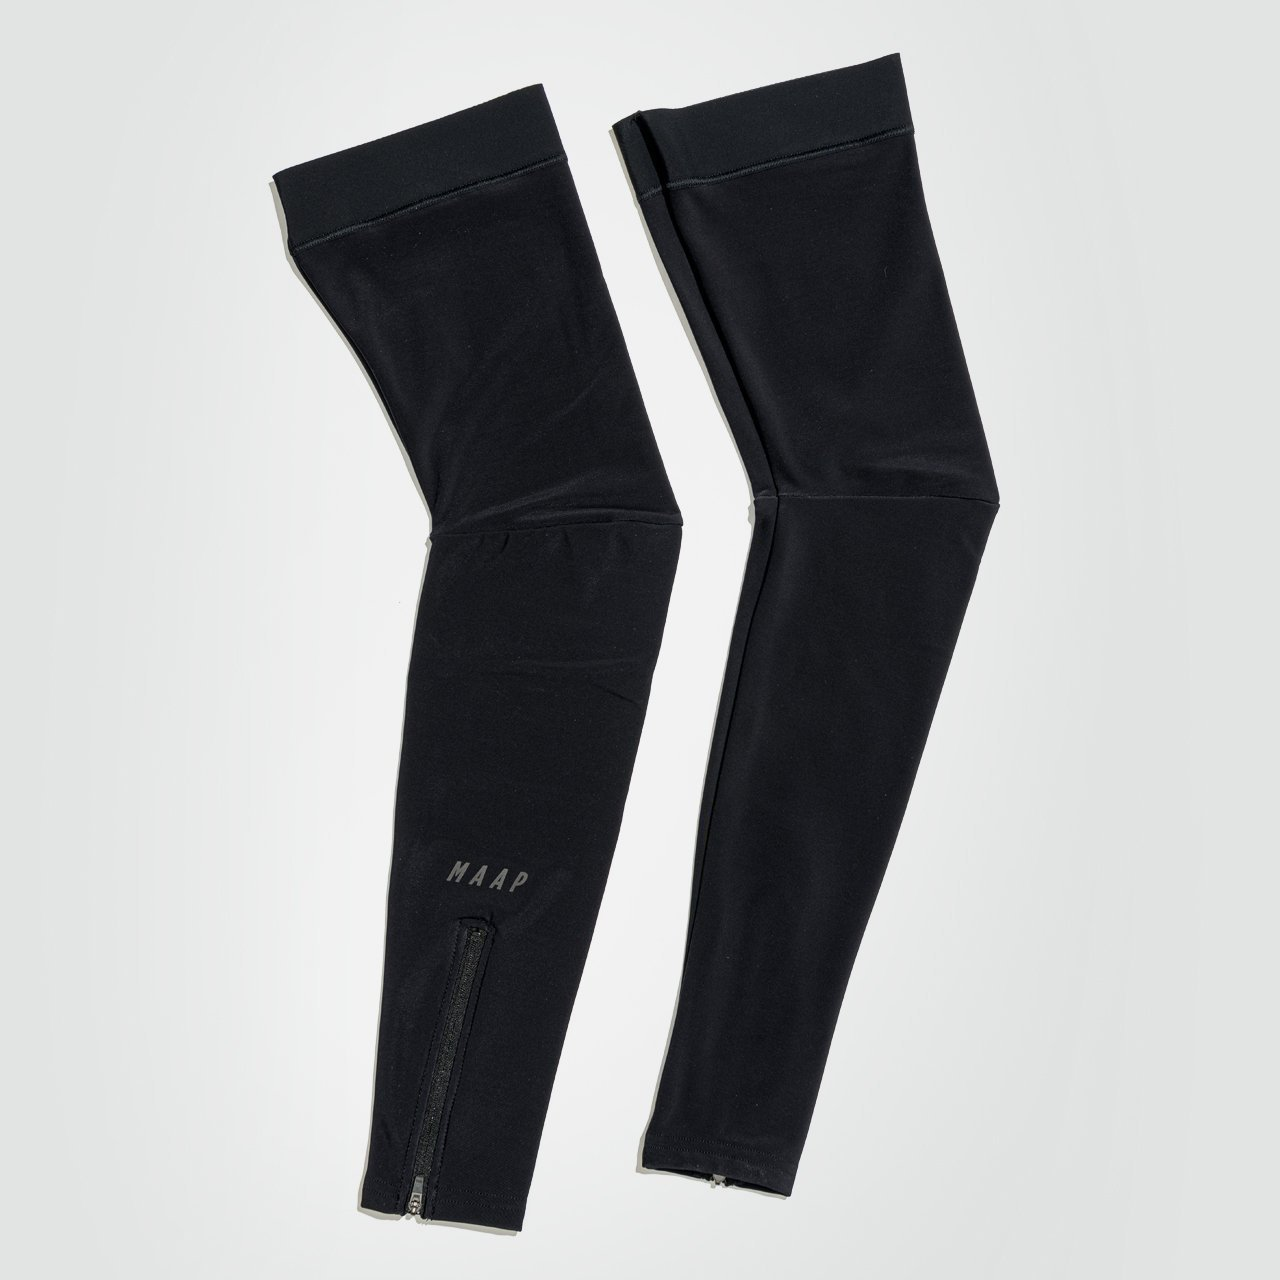 Base Leg Warmers - Black Leg Warmers MAAP S